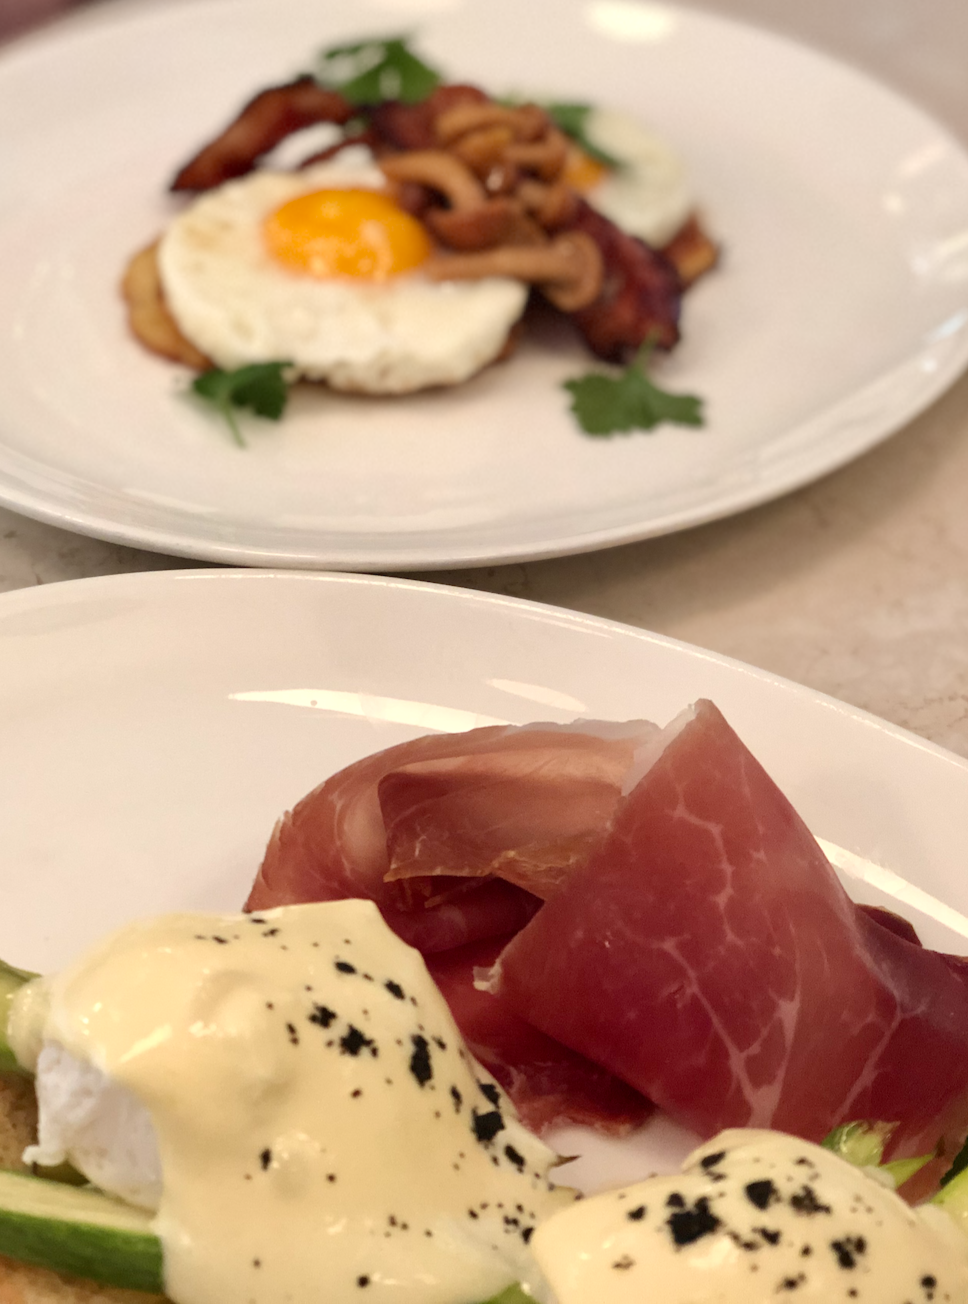 Best restaurants in Vilnius: Eggs Benedict at Sugamour, on a plate and taken as a close up.